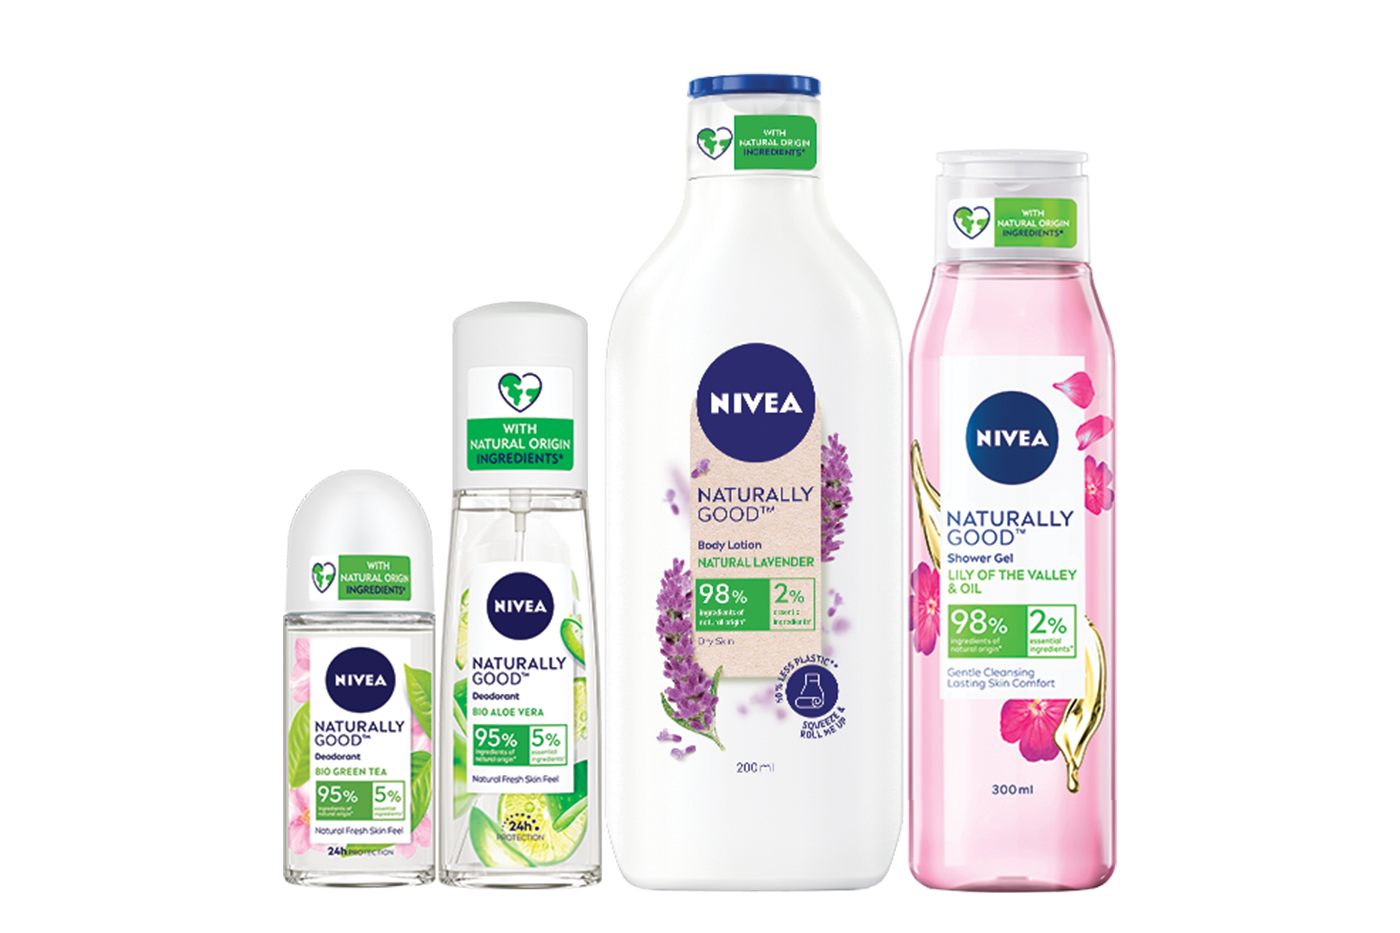 Nivea launches new sustainable skin range with minimal plastic packaging